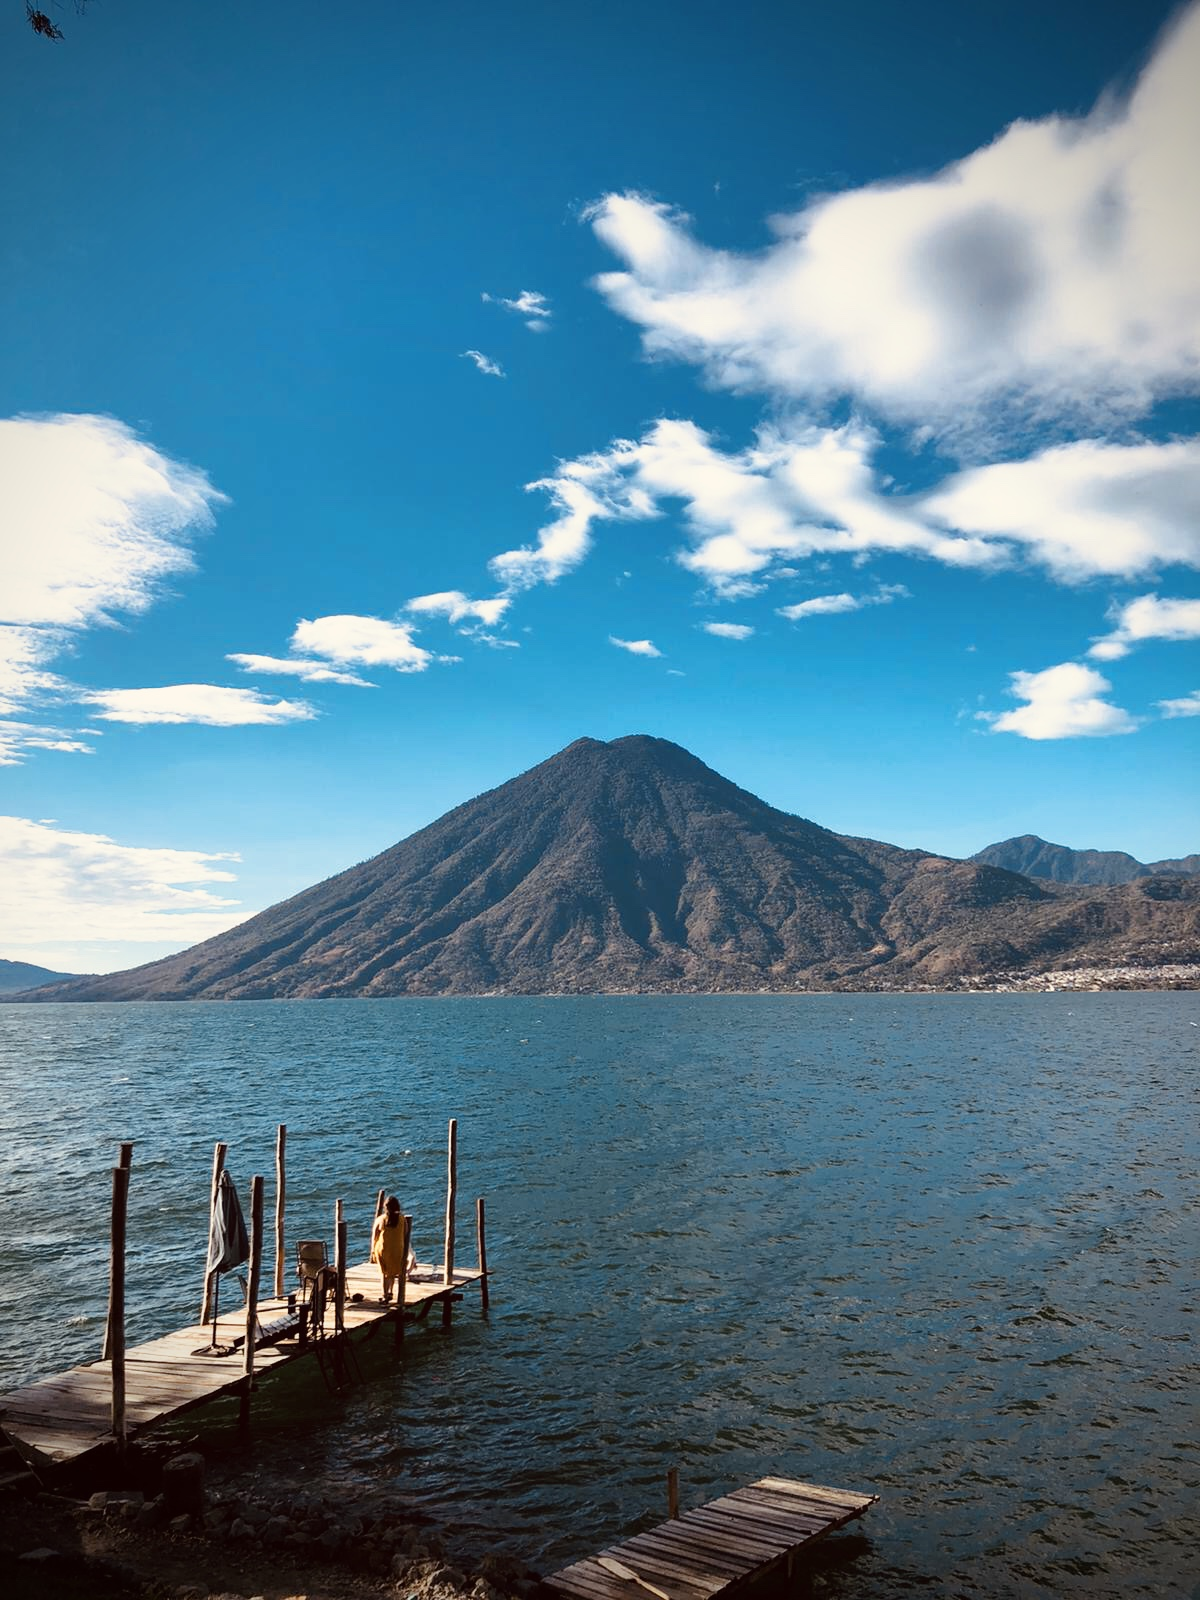 Student Shares Perspective on Study Abroad in Guatemala